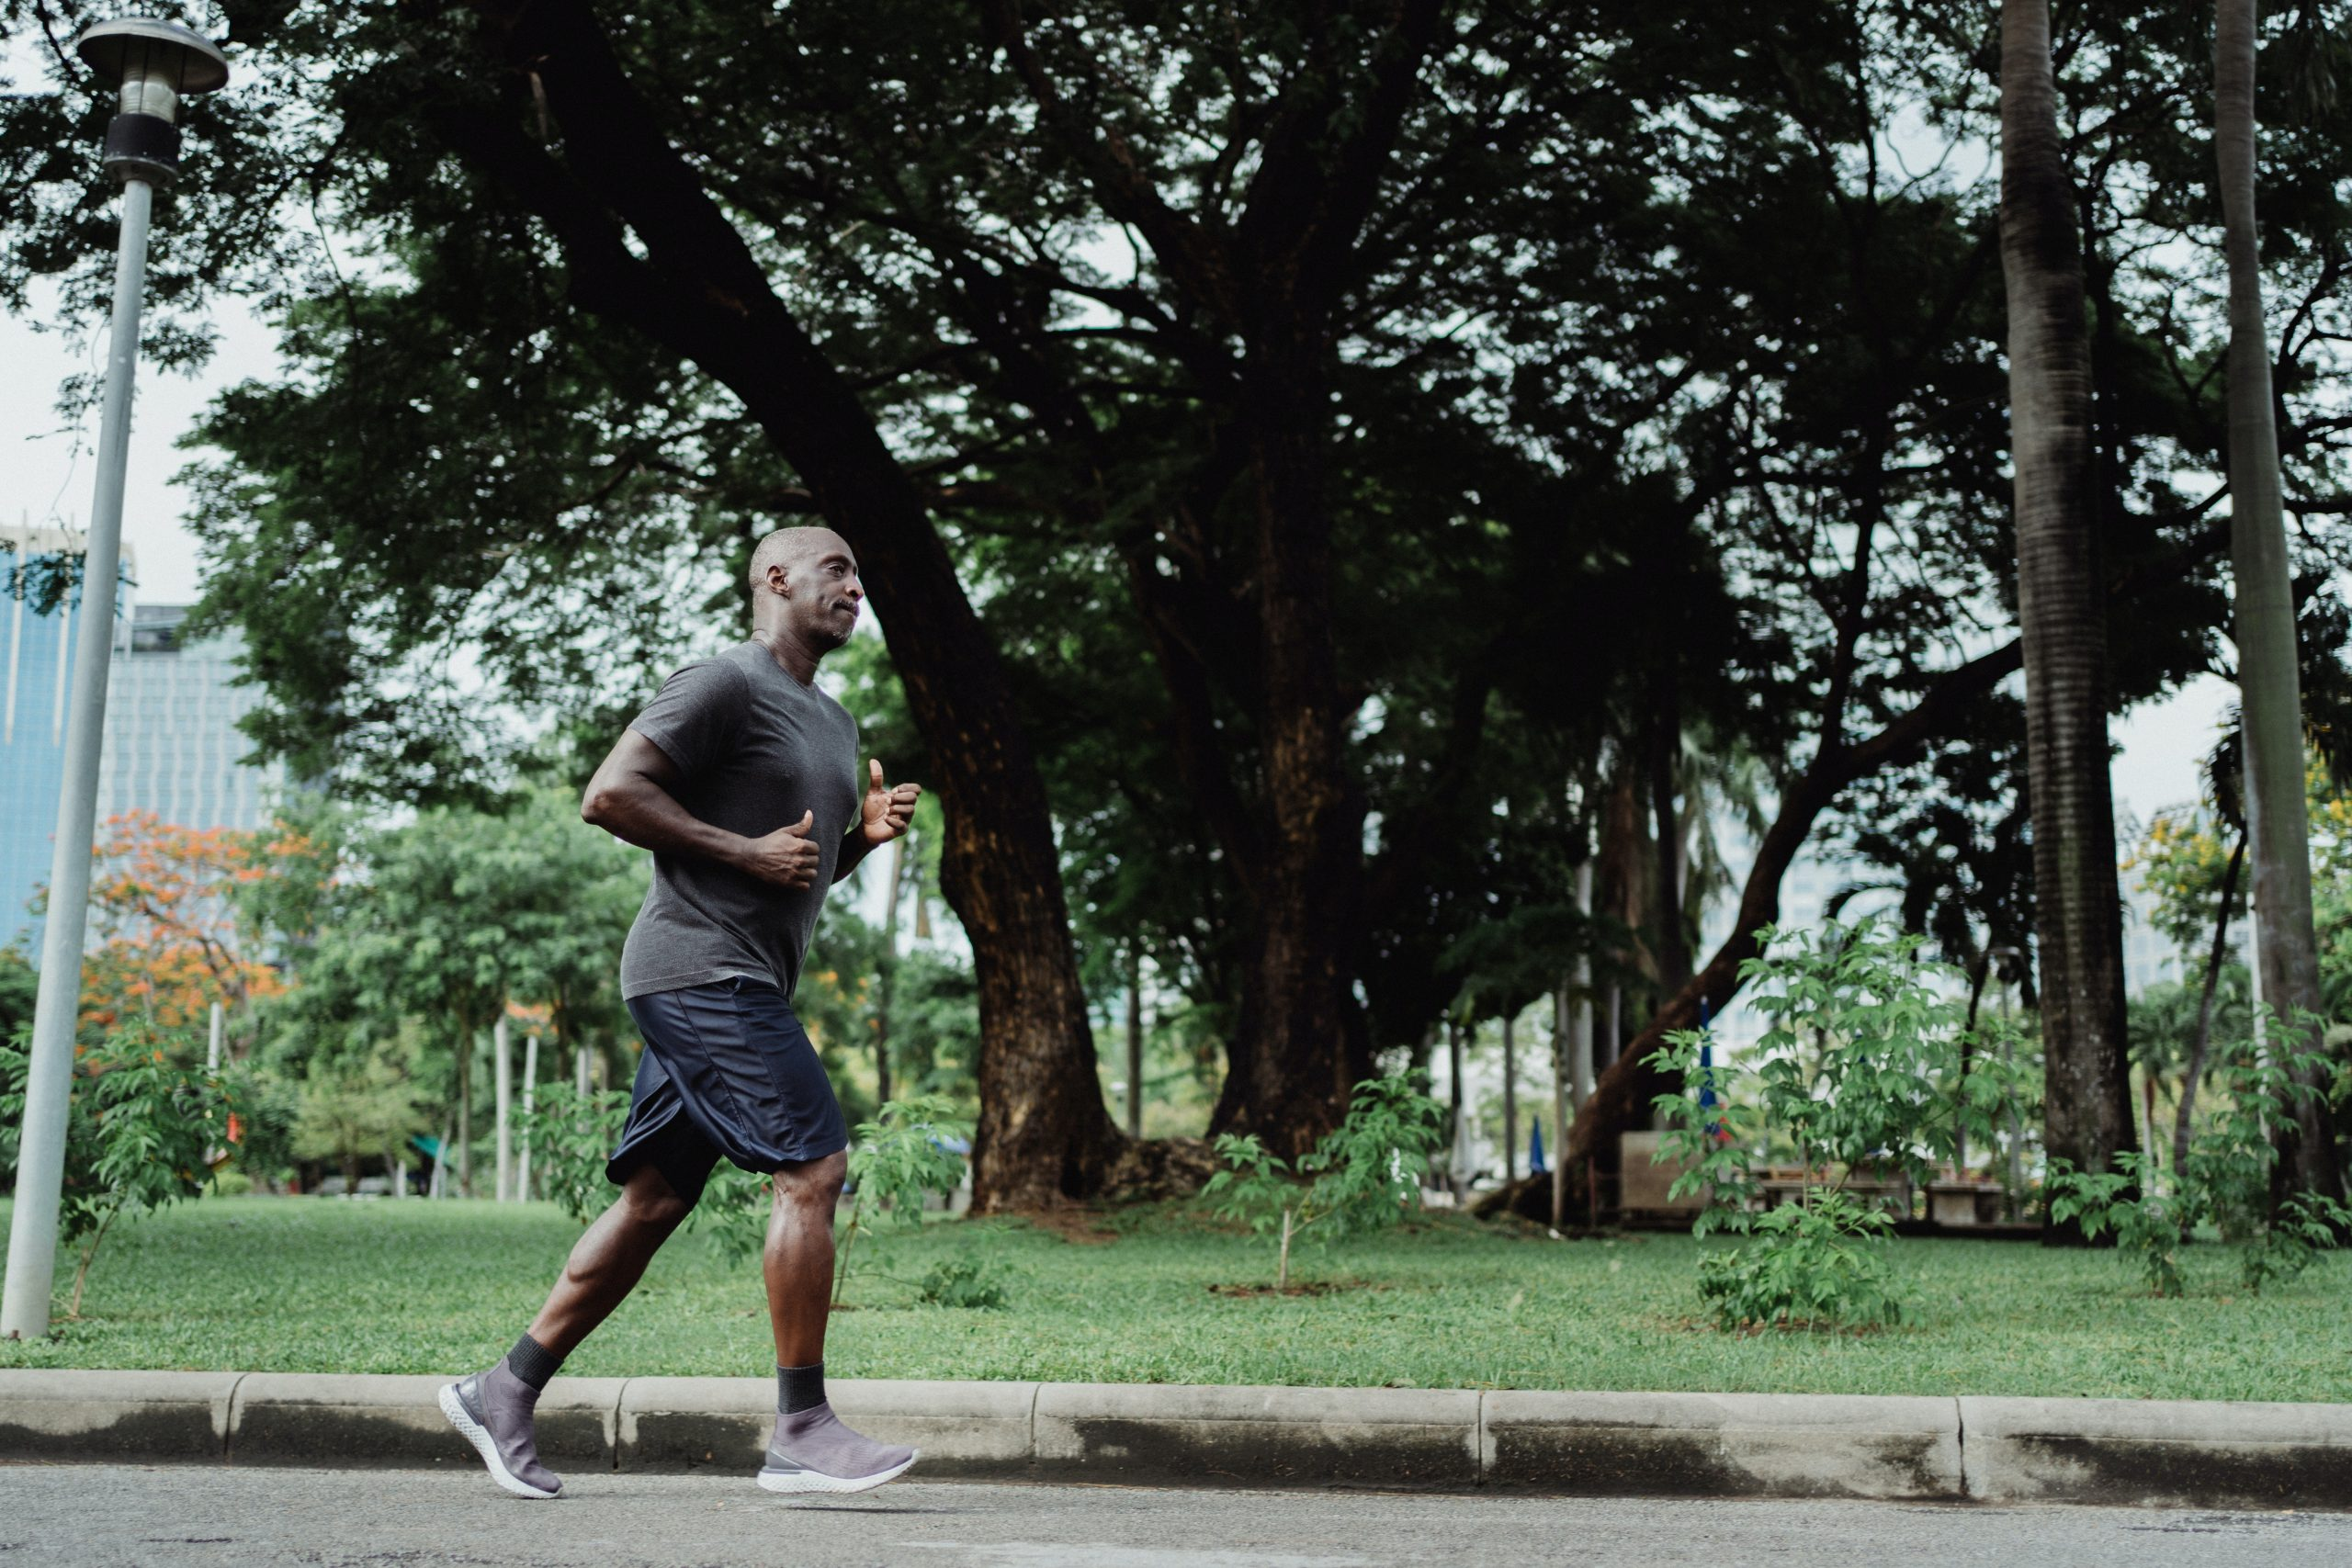 Mental health and exercise: moving to a healthier mind